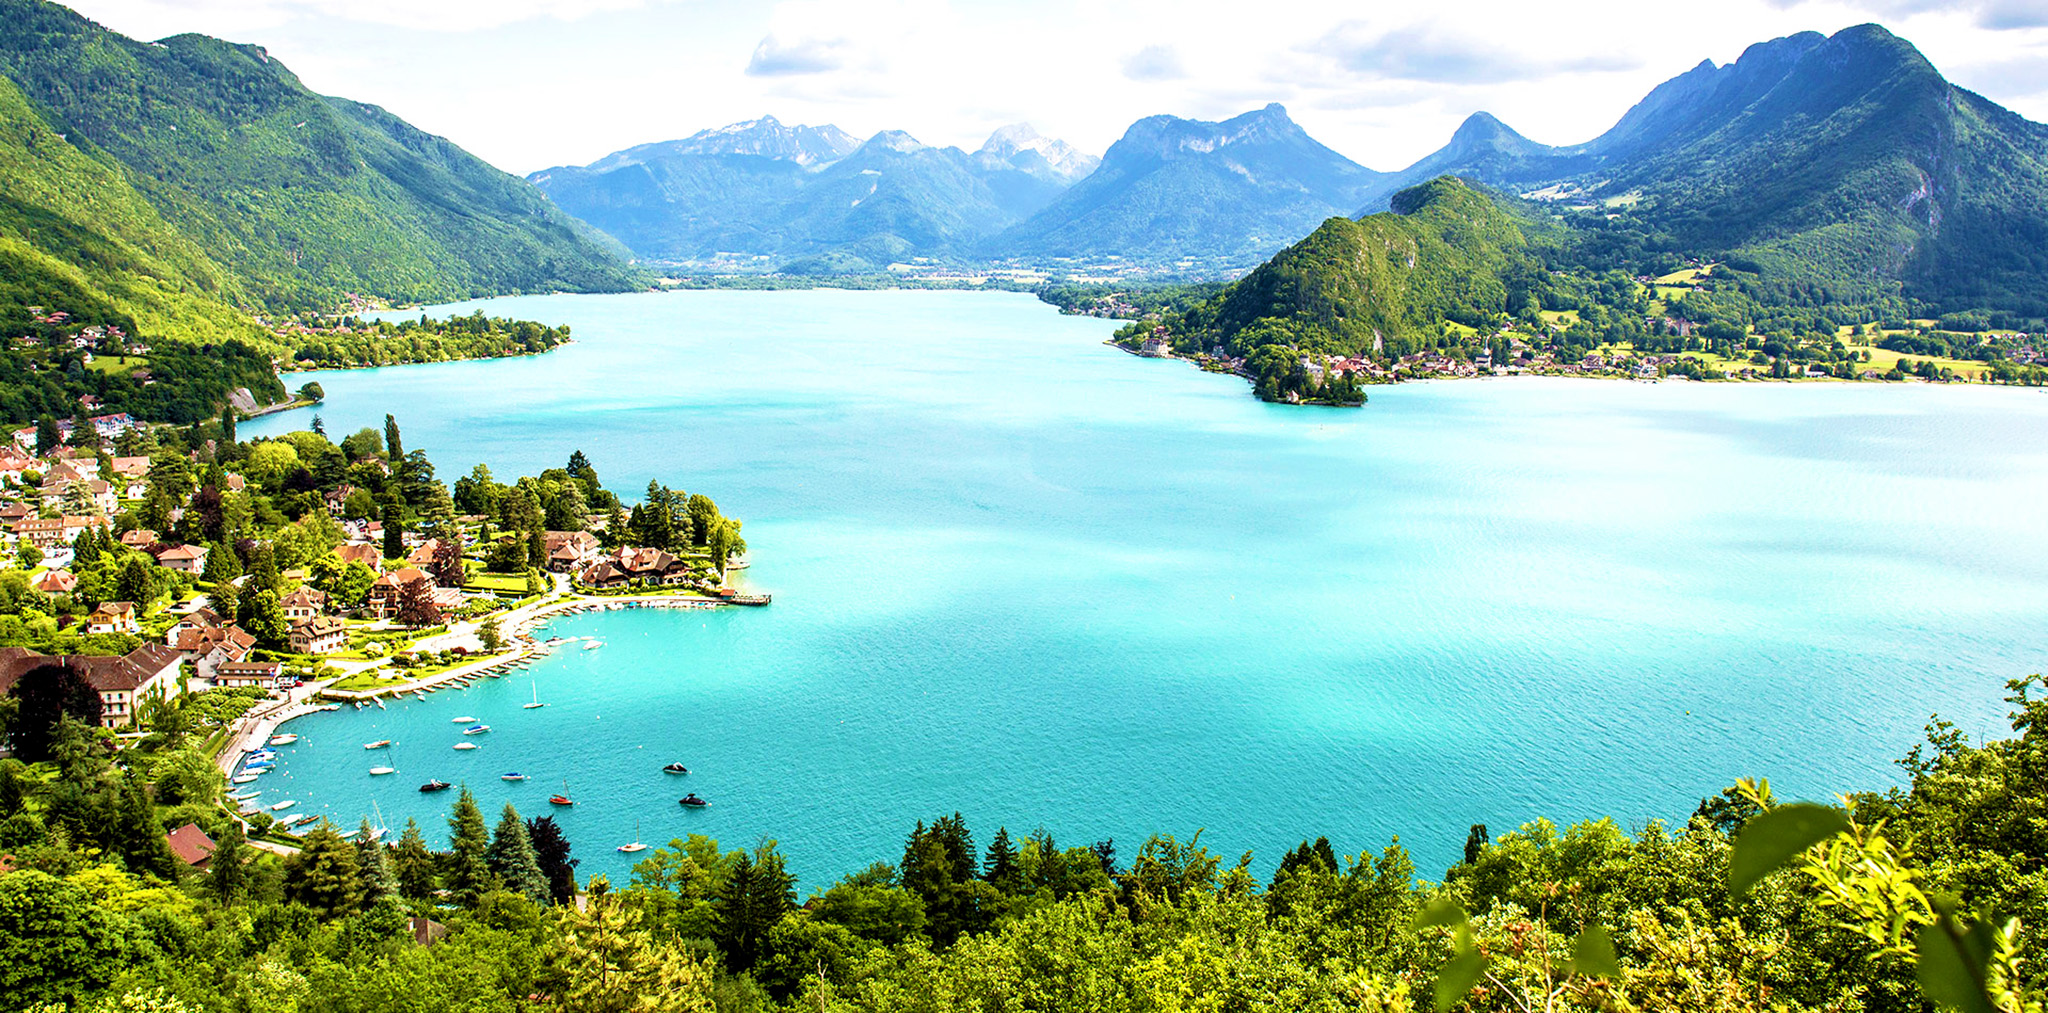 kt_2020_370_Keytours_excursions_Swisstours_annecy_lac3_2048_10